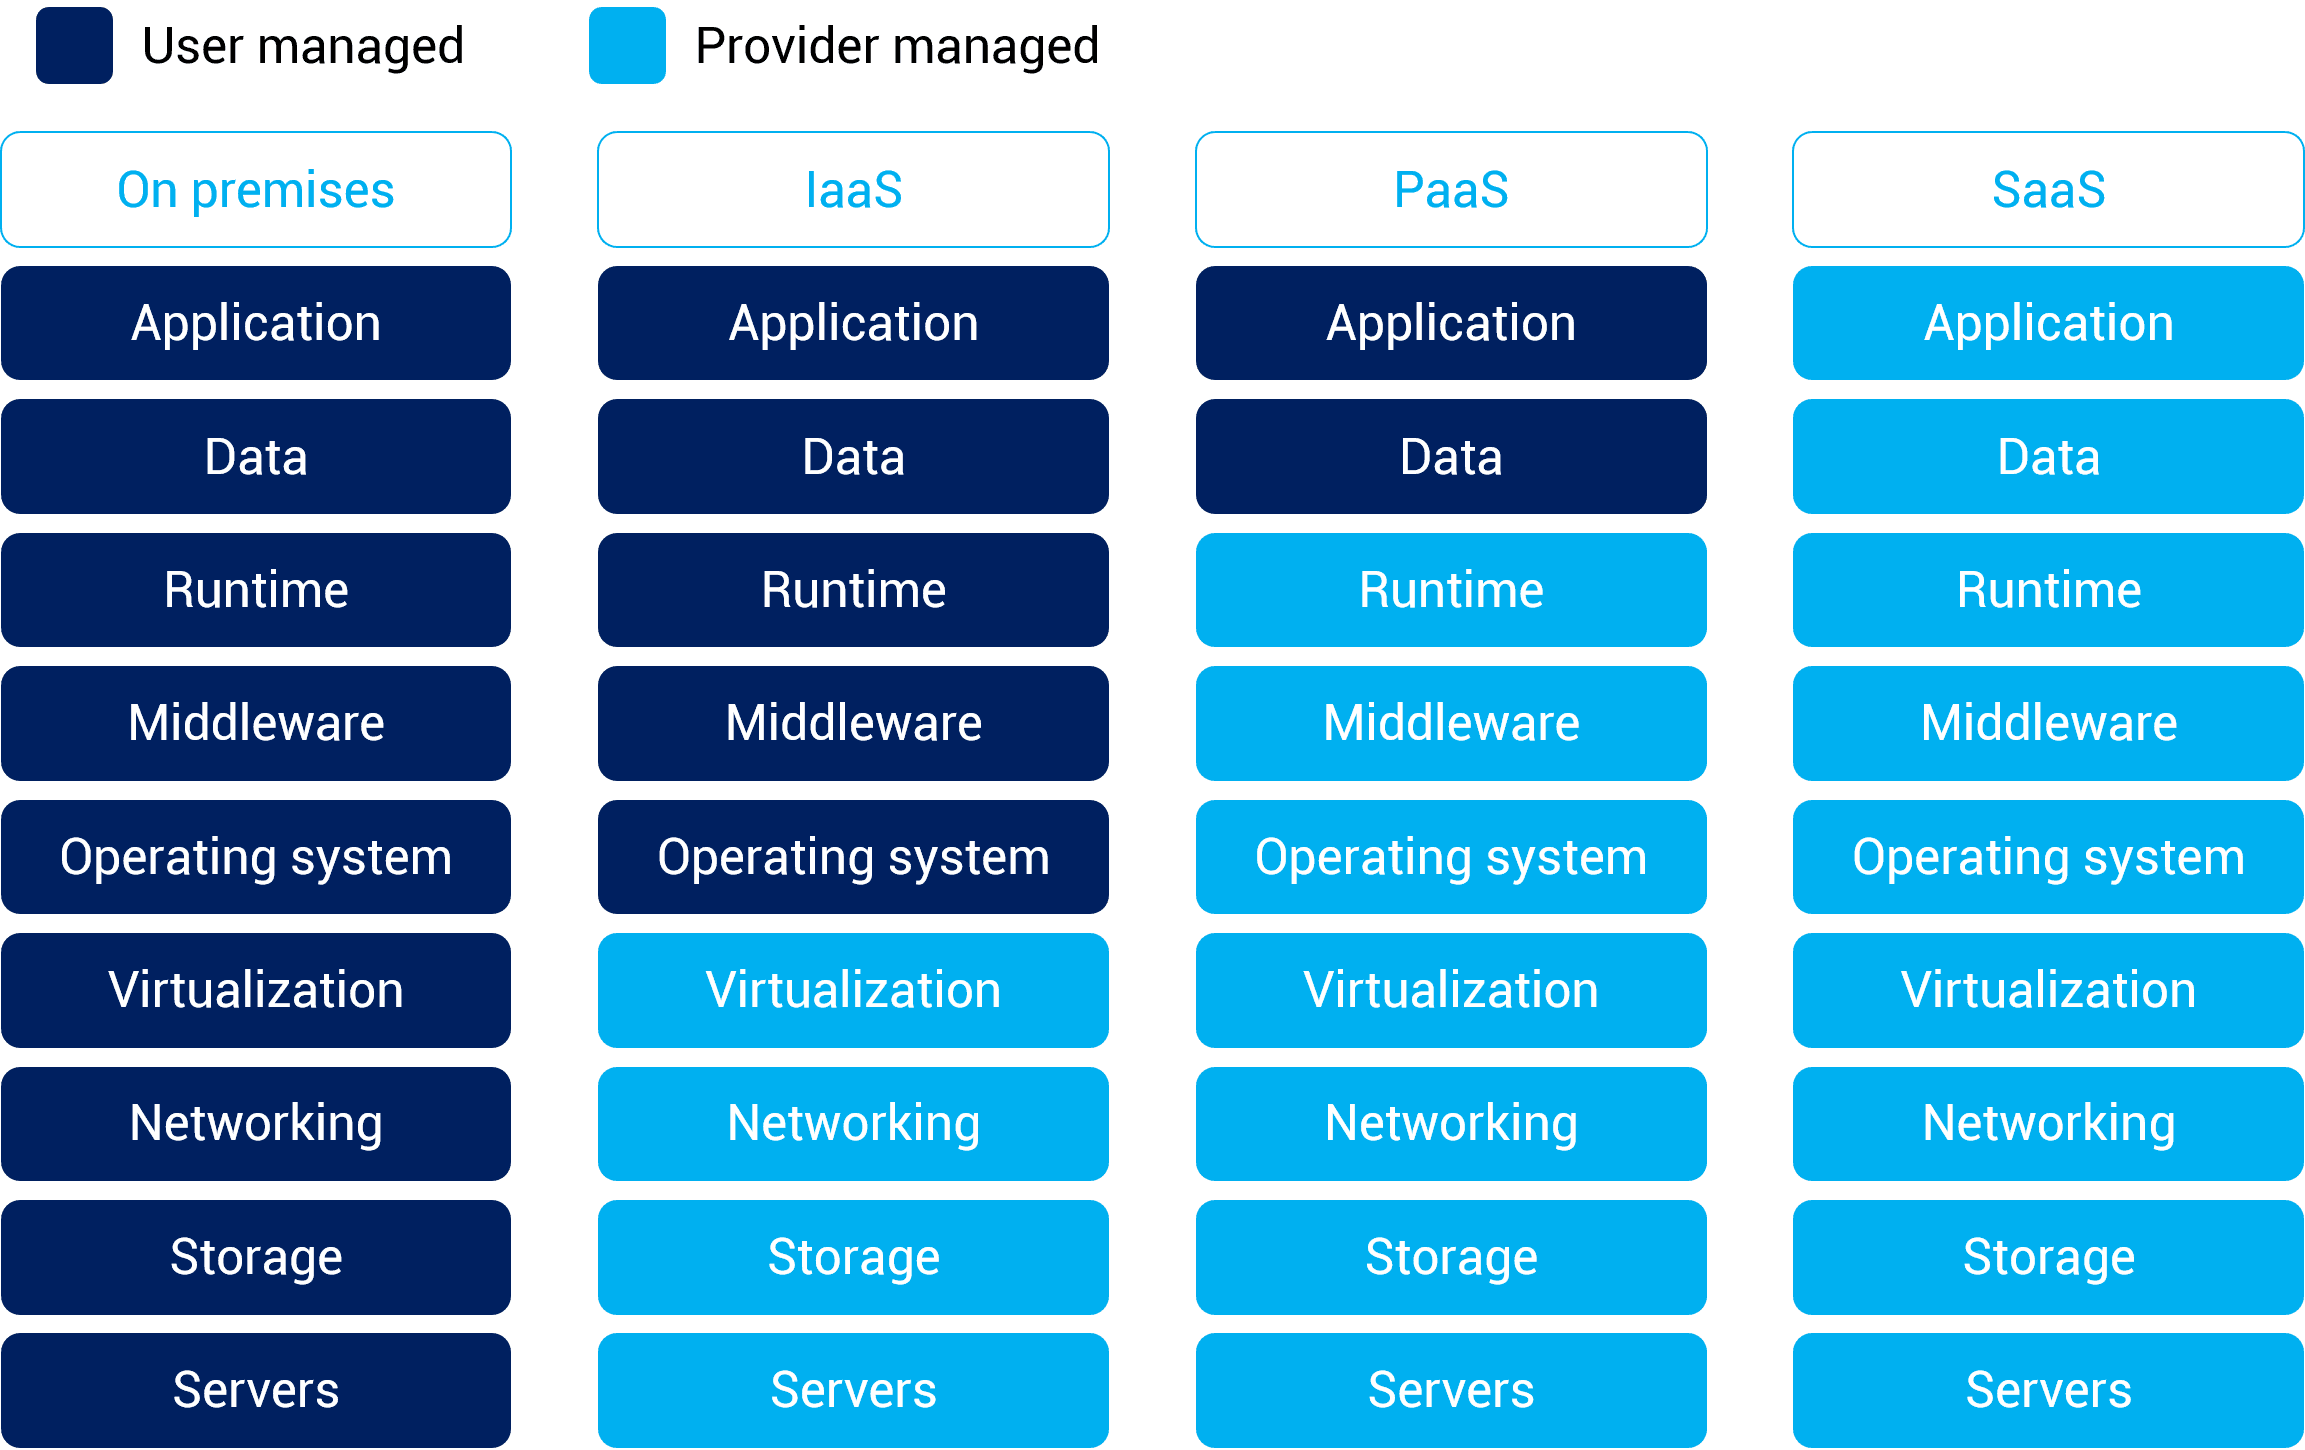 what is difference between iaas, paas and saas